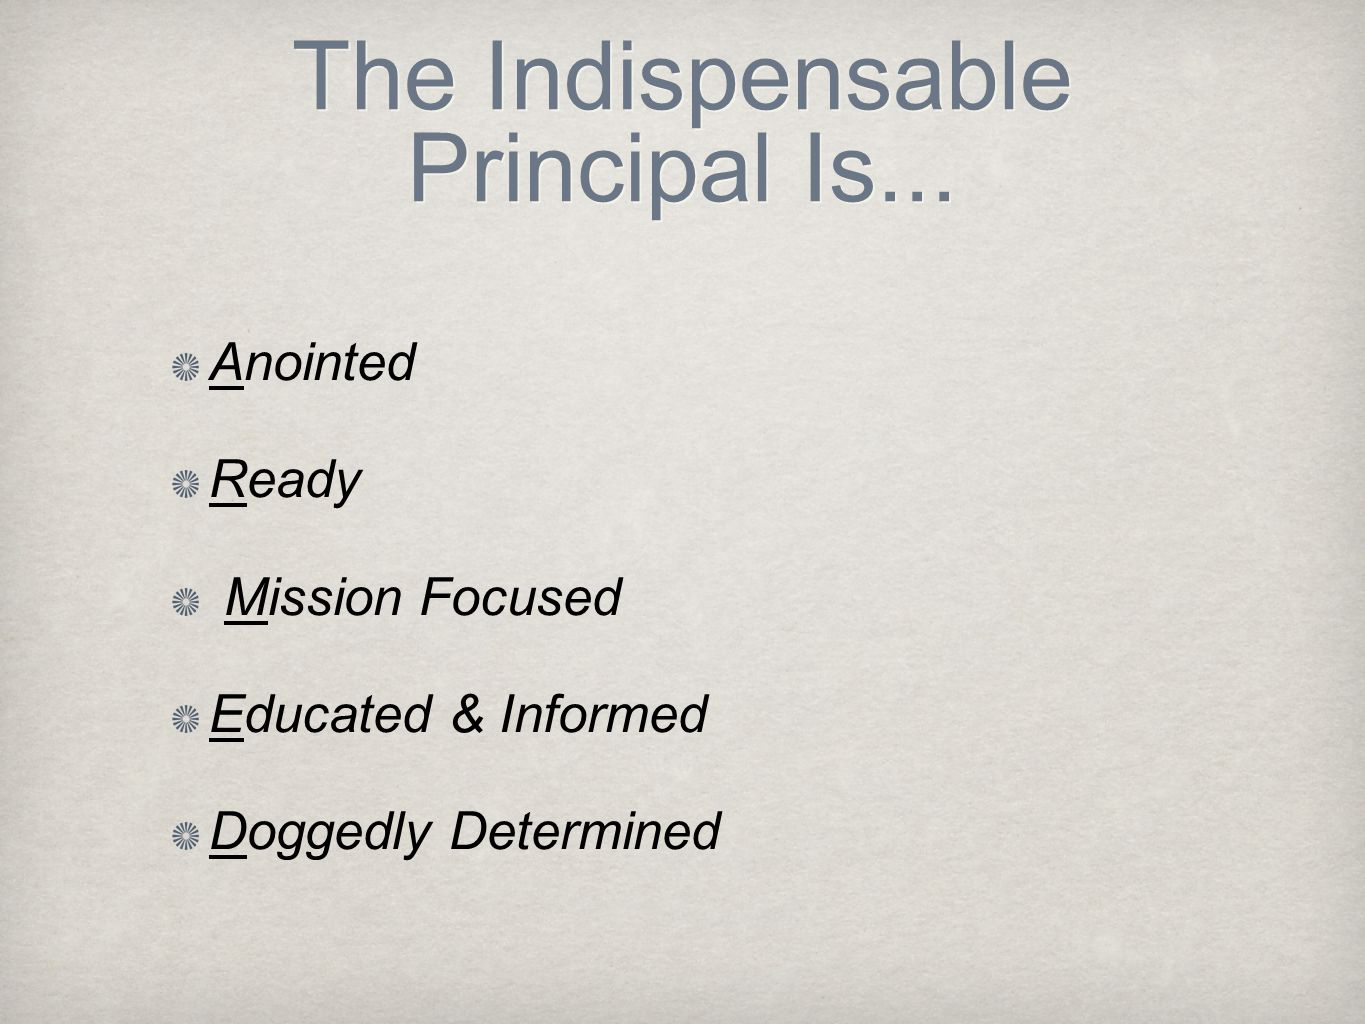 The Indispensable Principal Is...